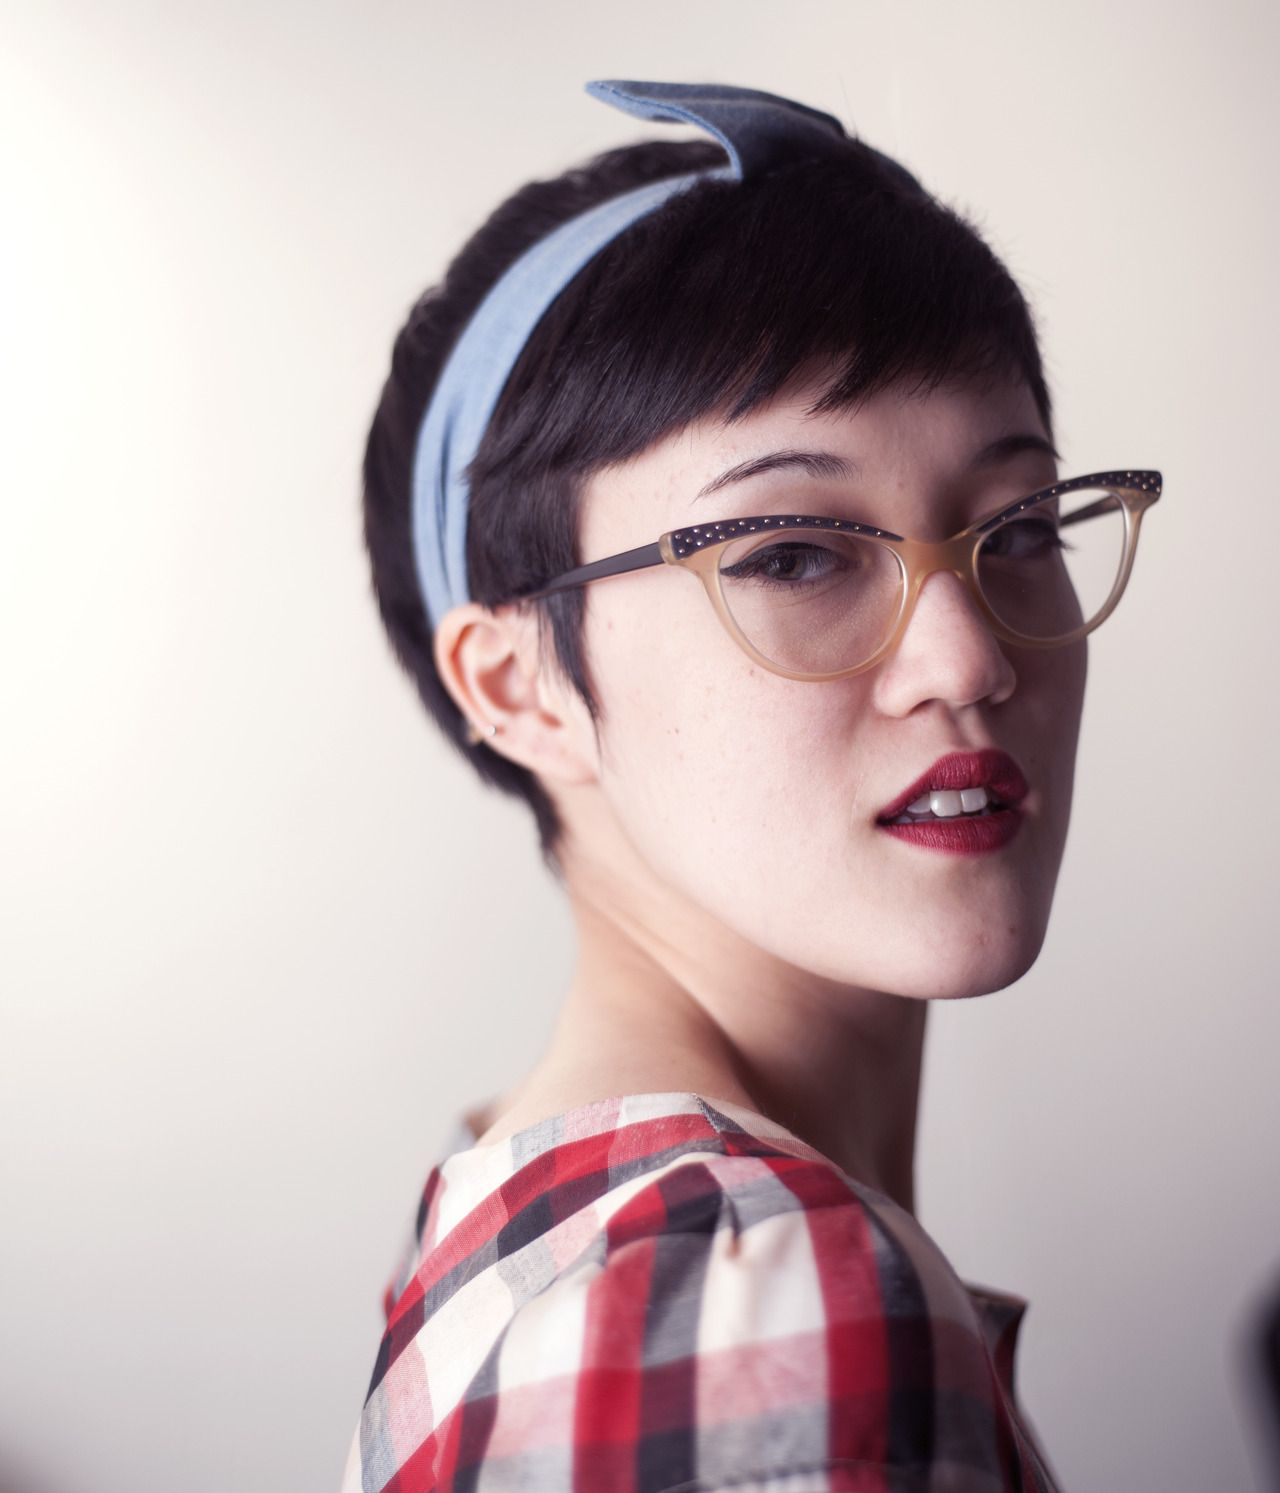 Short hairstyles with glasses - Girls With Short Hair Rock Vintage Glasses